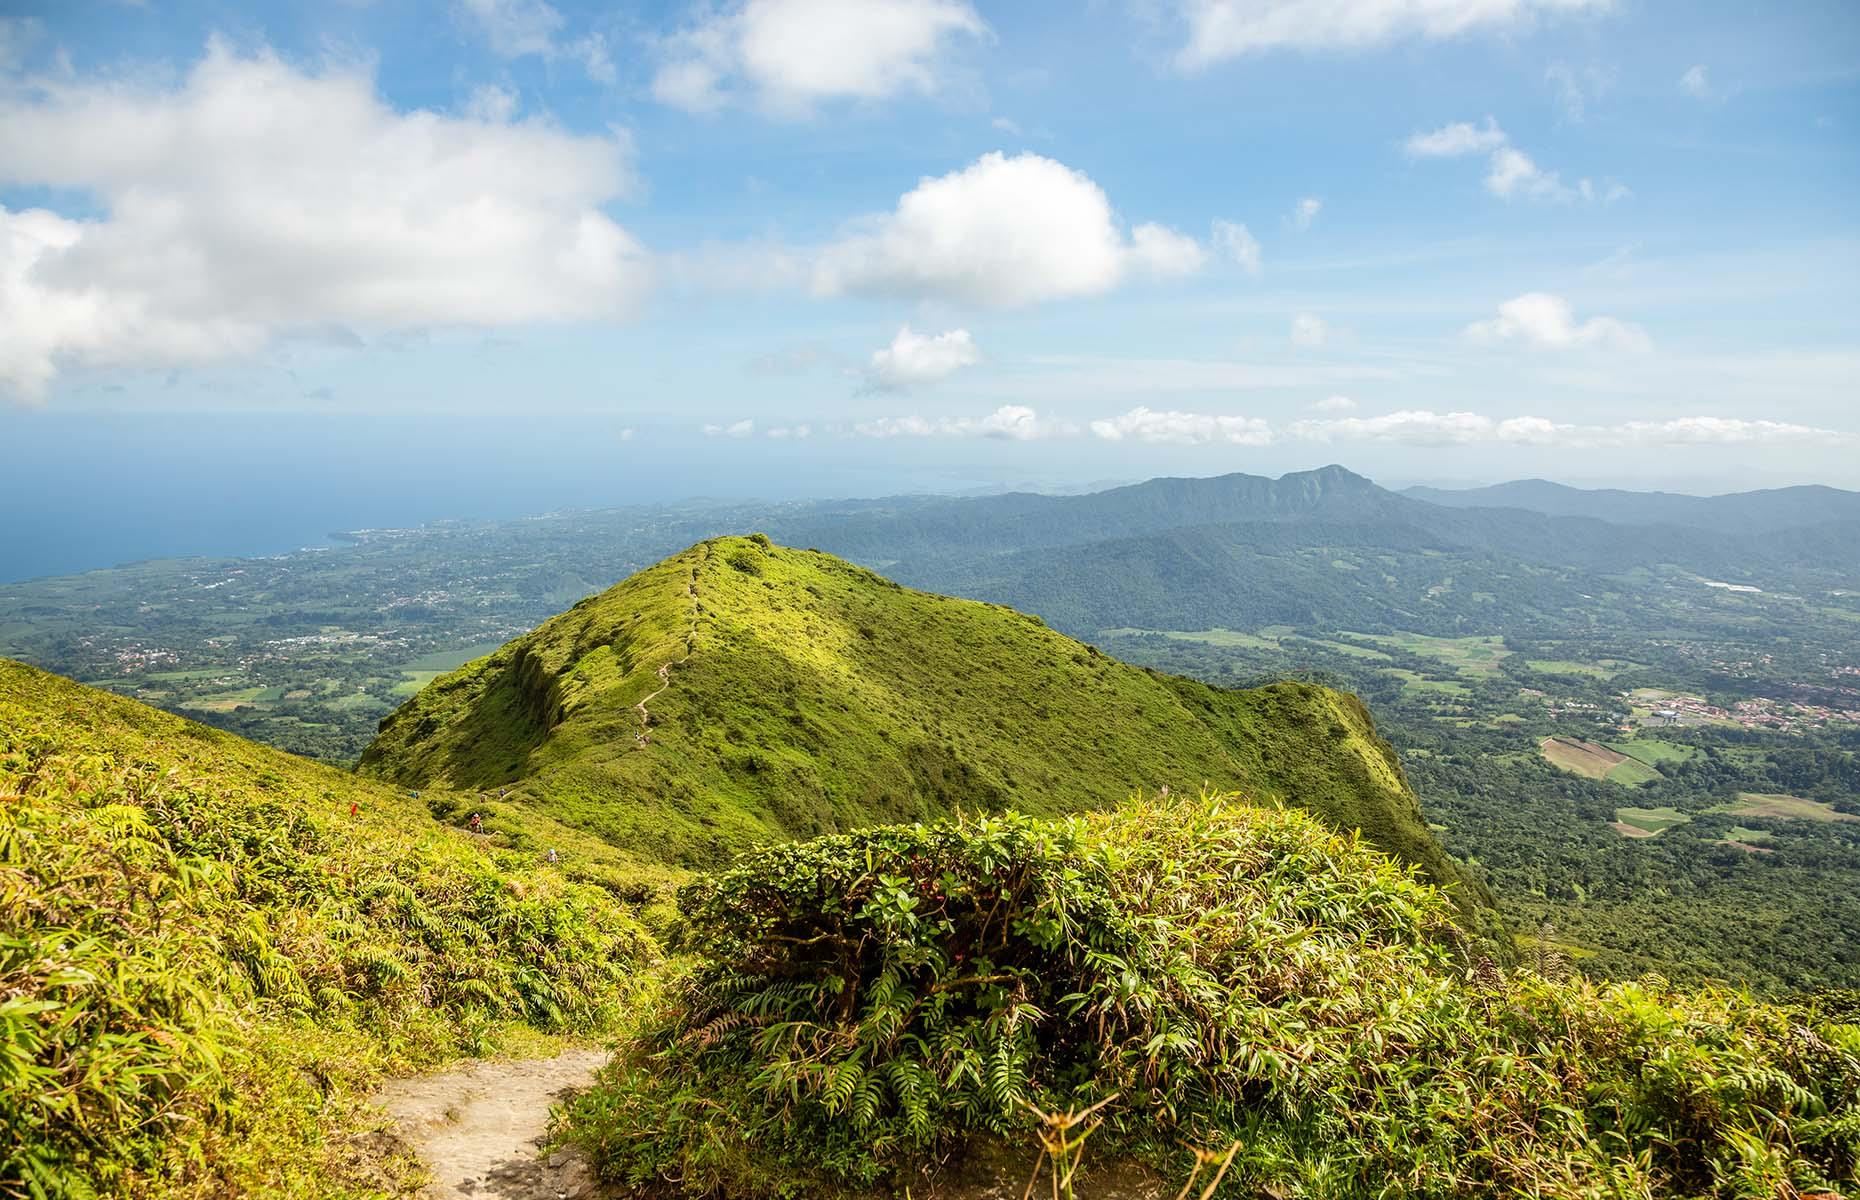 Slide 33 of 41: Also the highest peak in Martinique at 4,583 feet (1,397m), Pelée has several trails to explore the slopes and peak. The views of the bay and its black volcanic sands, when it's not too foggy, are phenomenal. Discover secrets of the world's most beautiful mountains.